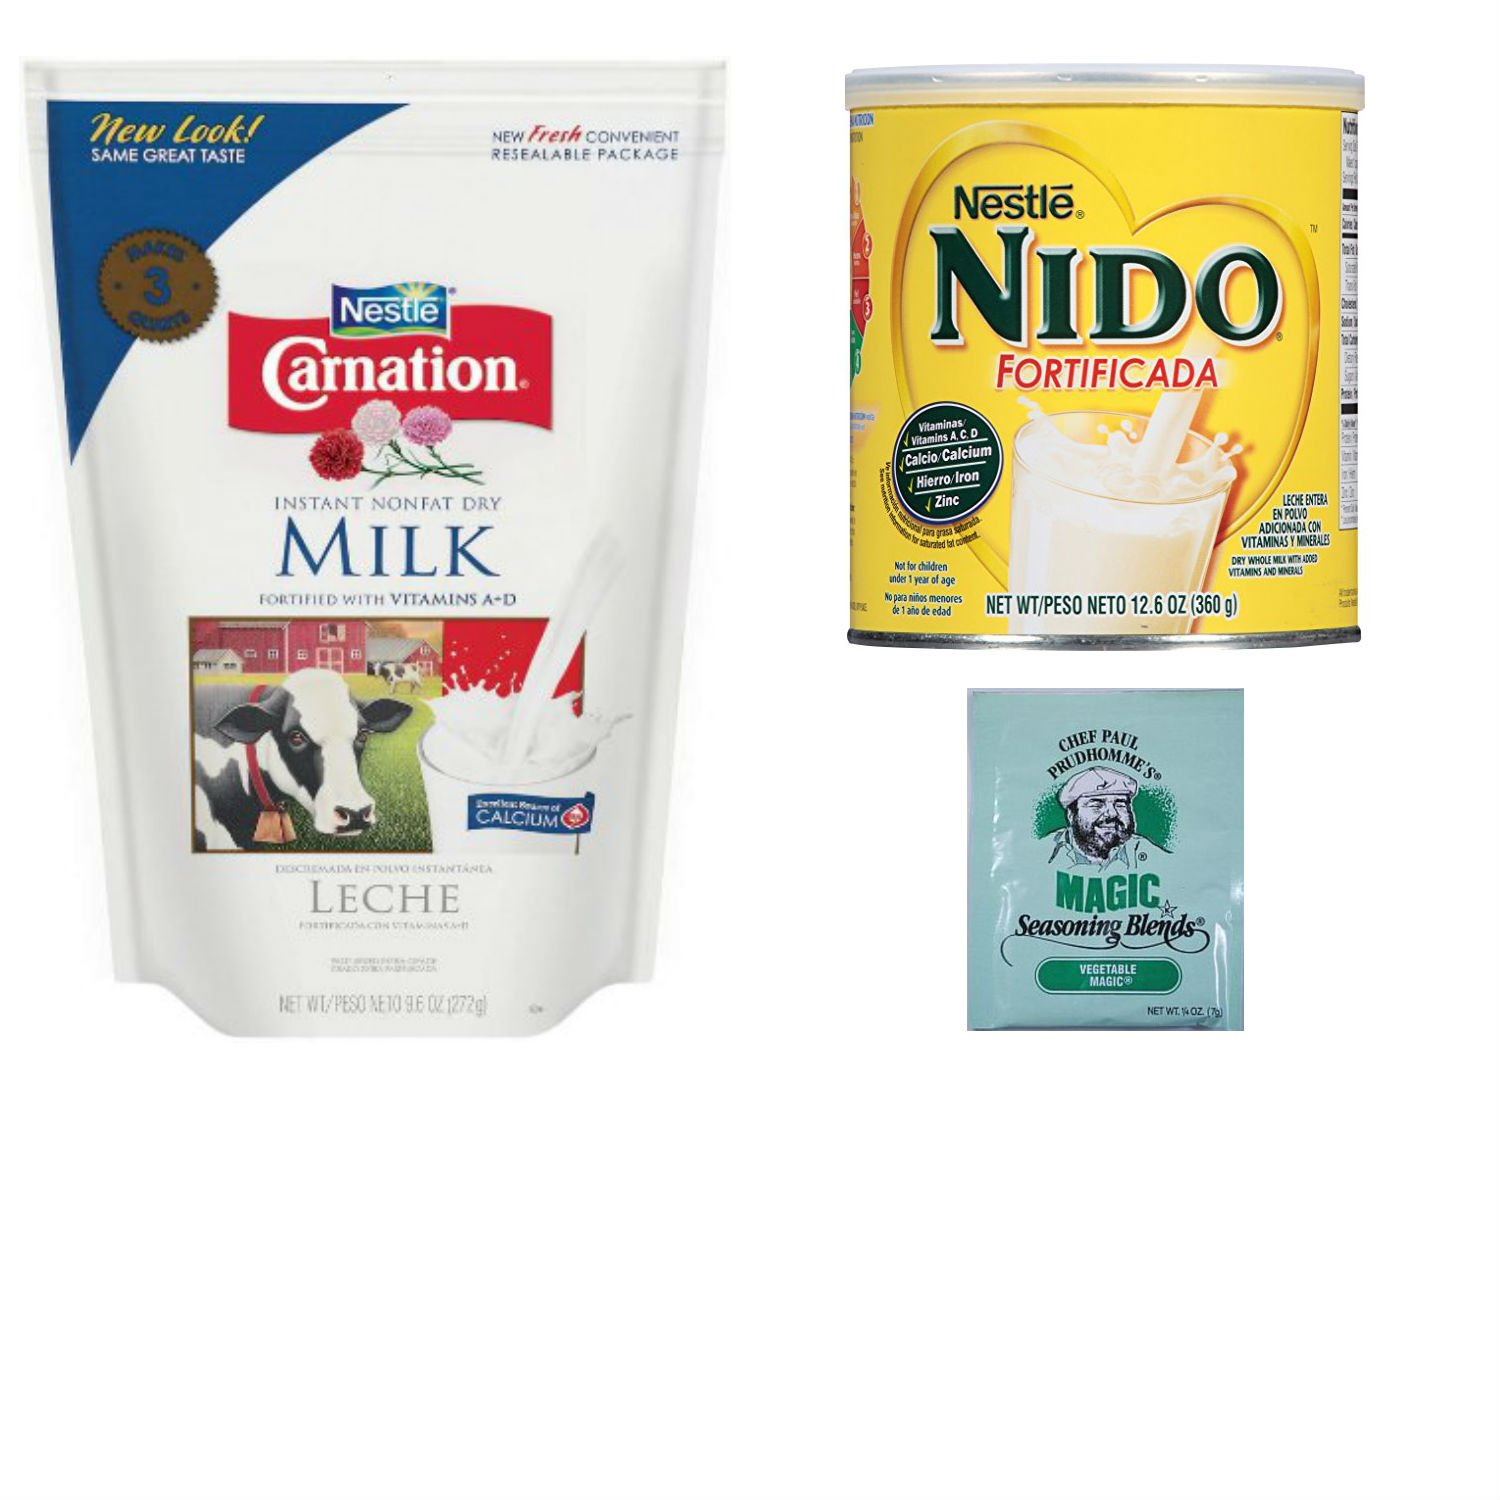 Amazon.com : Nestle Powdered Milk Variety Pack. Carnation Instant Nonfat Dry Milk and Nido Fortificada. One-Stop Shopping For 2 Popular Fortified Milk ...